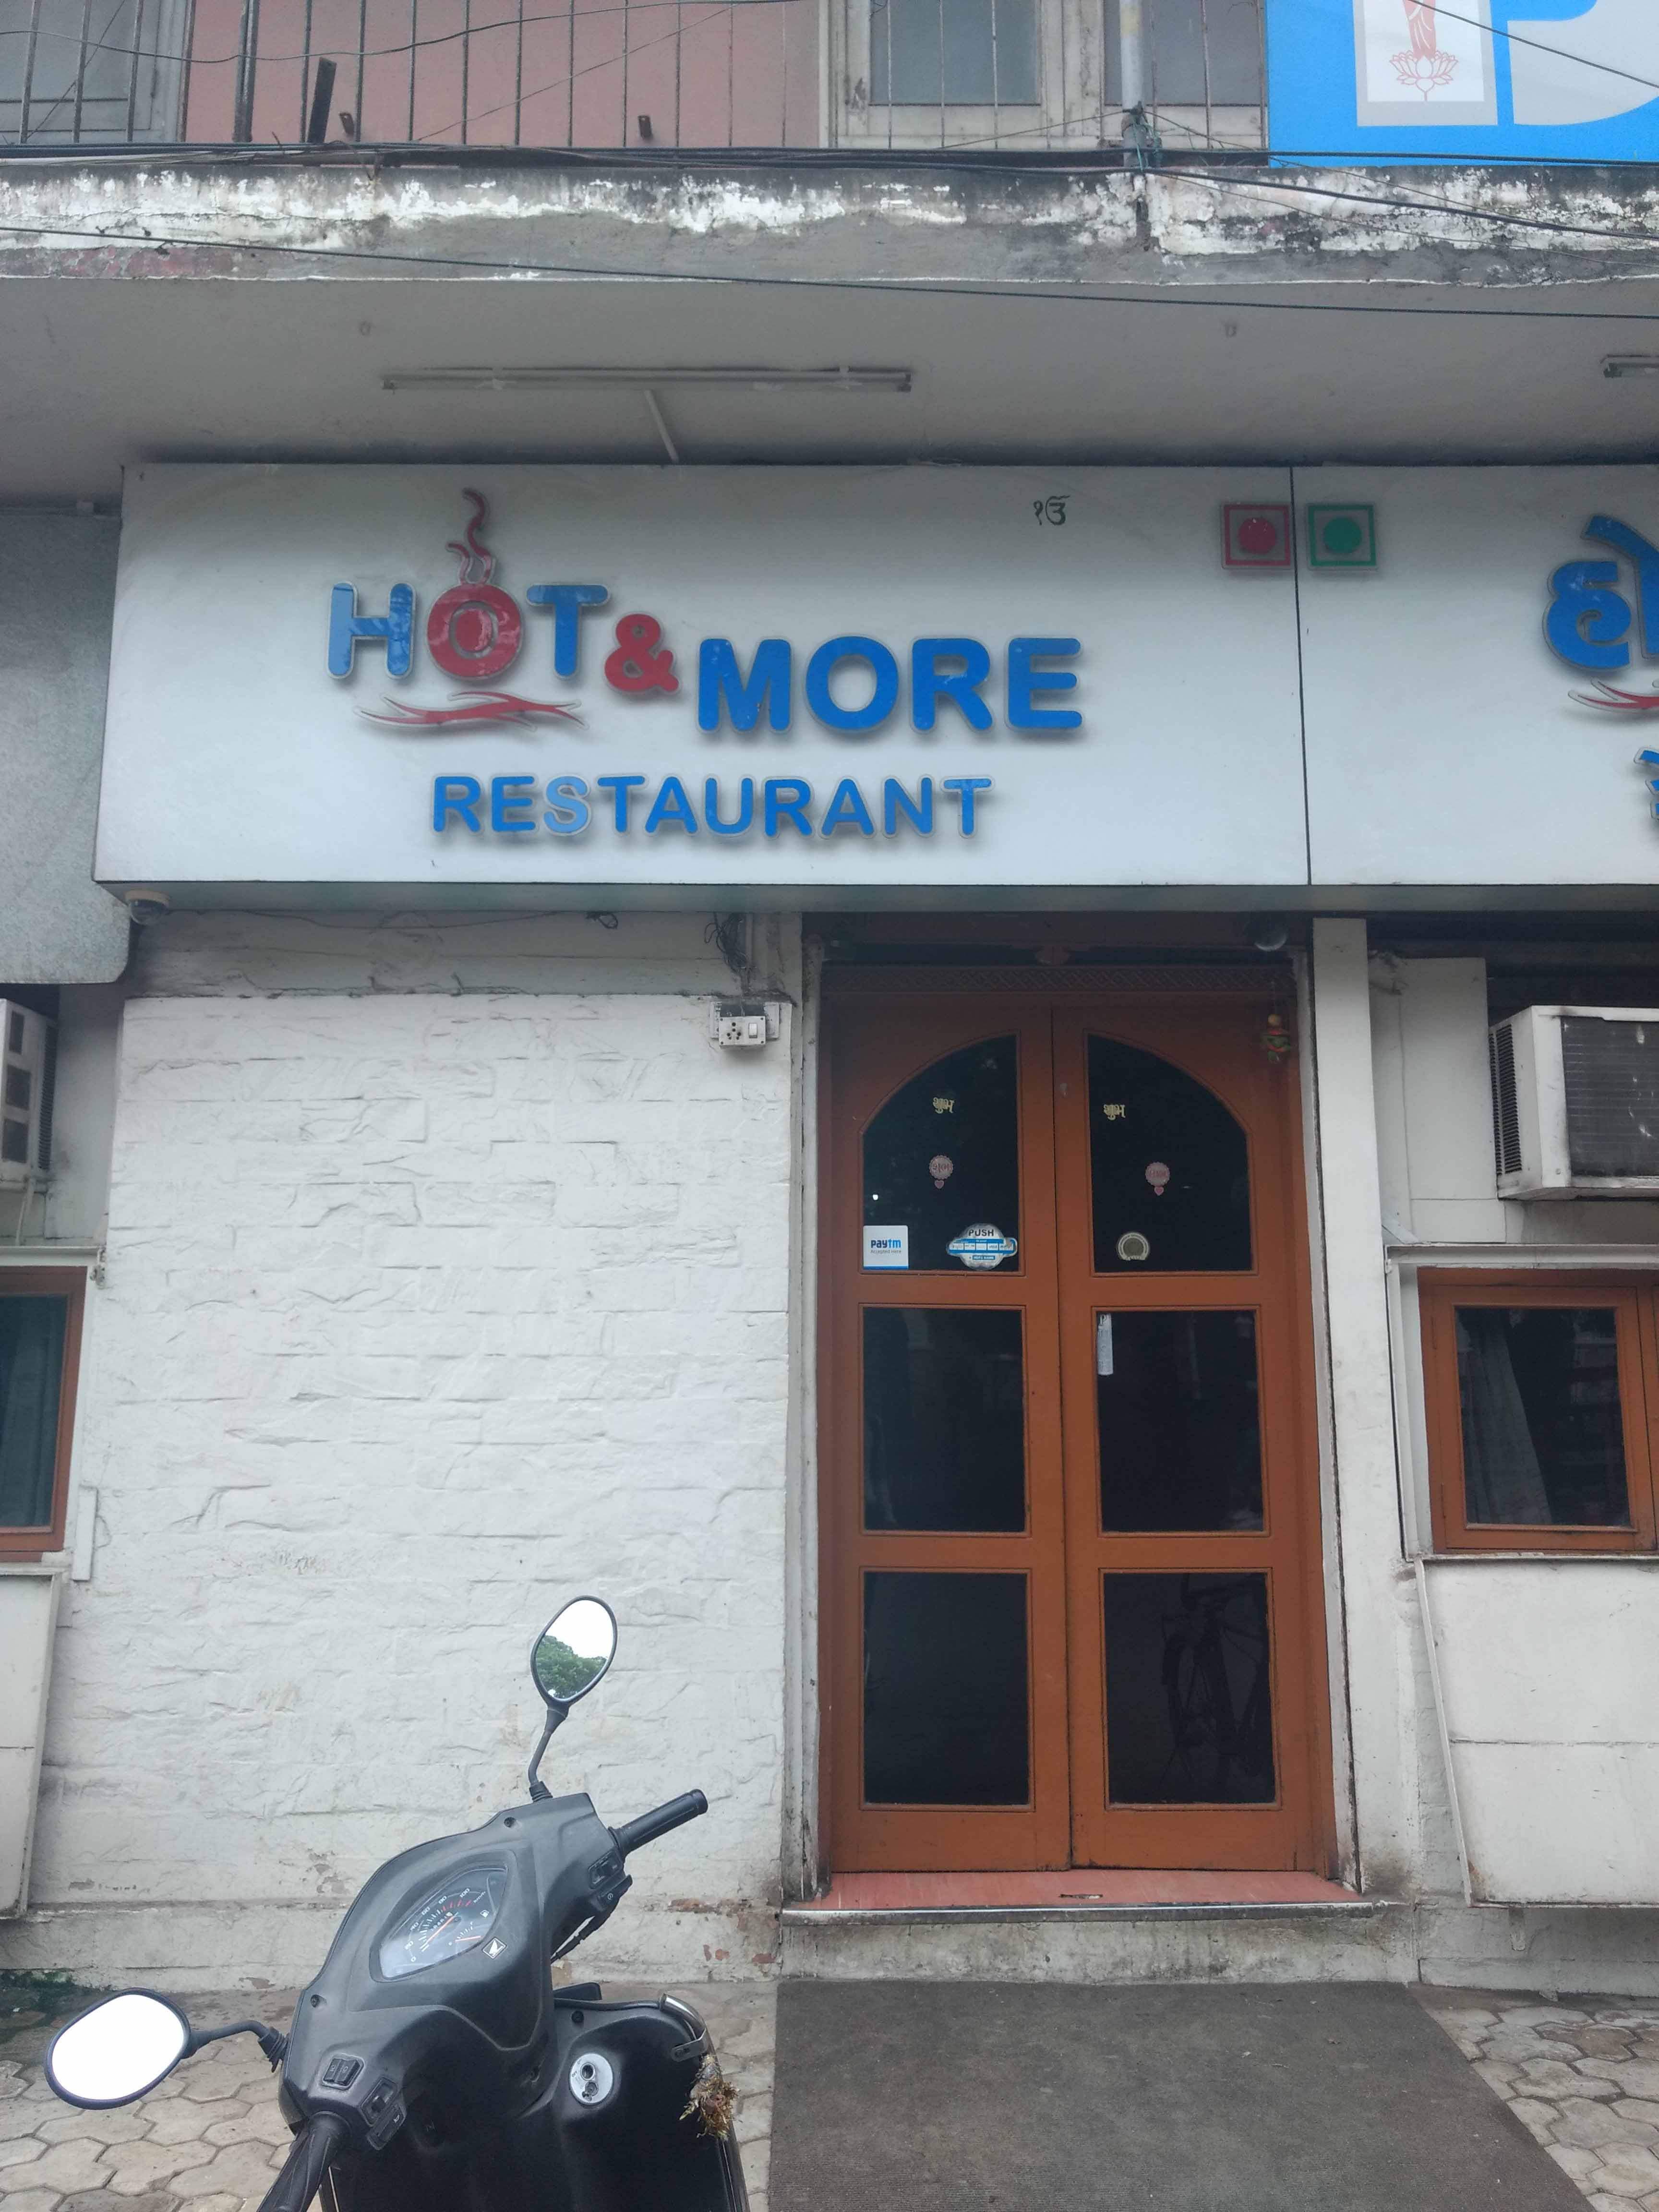 Hot and More Restaurant - Rajkot Image